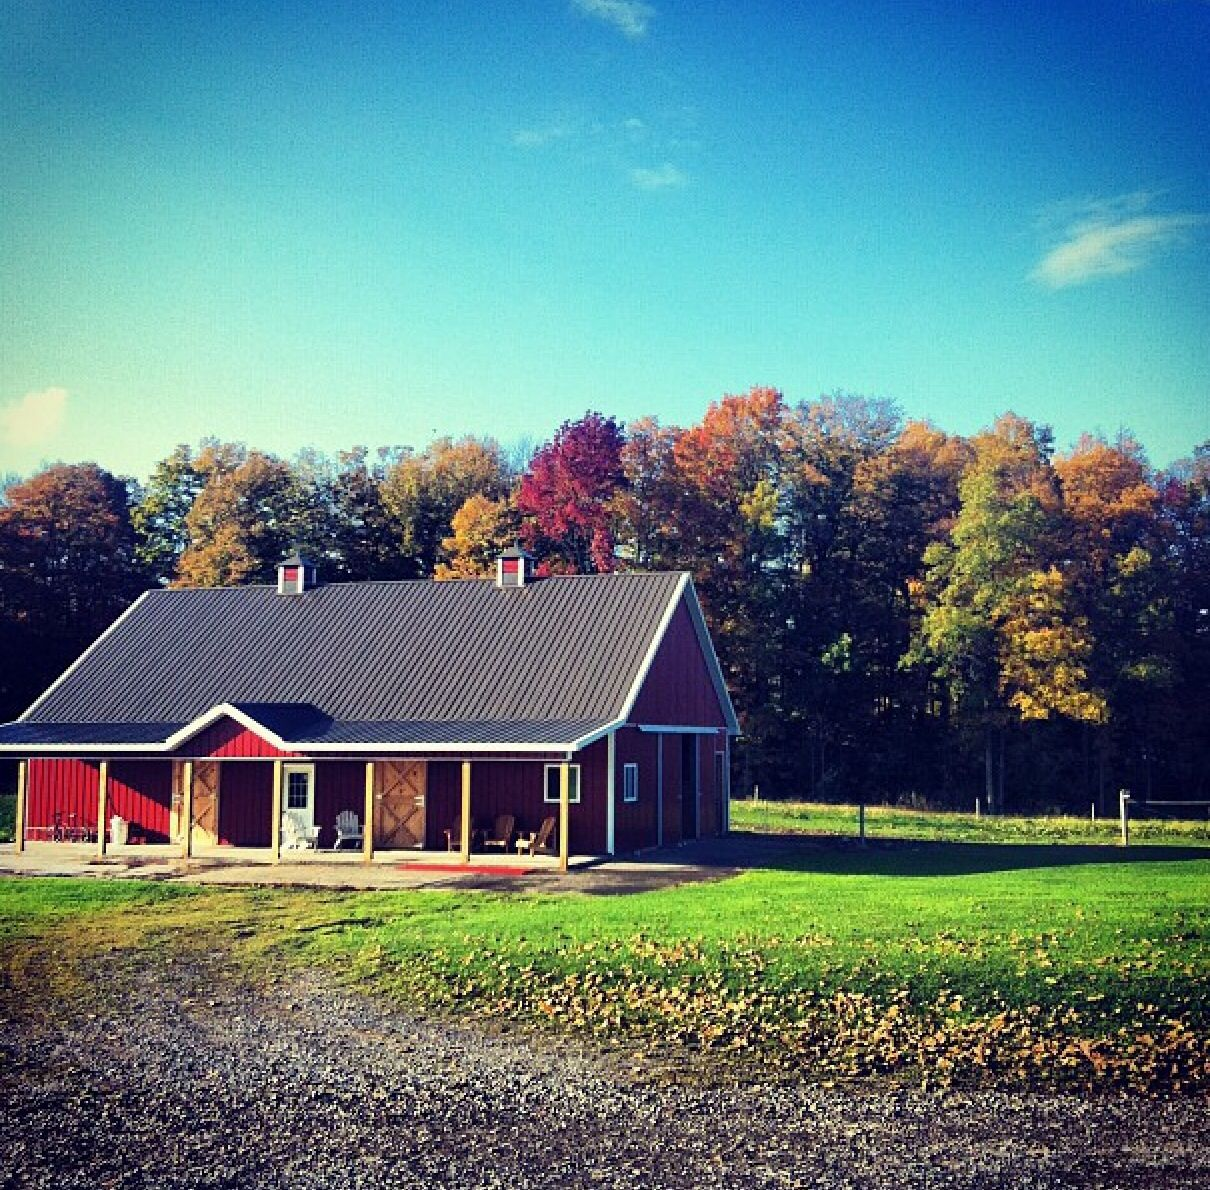 Perfect Horse Barn. #PhalenFarms